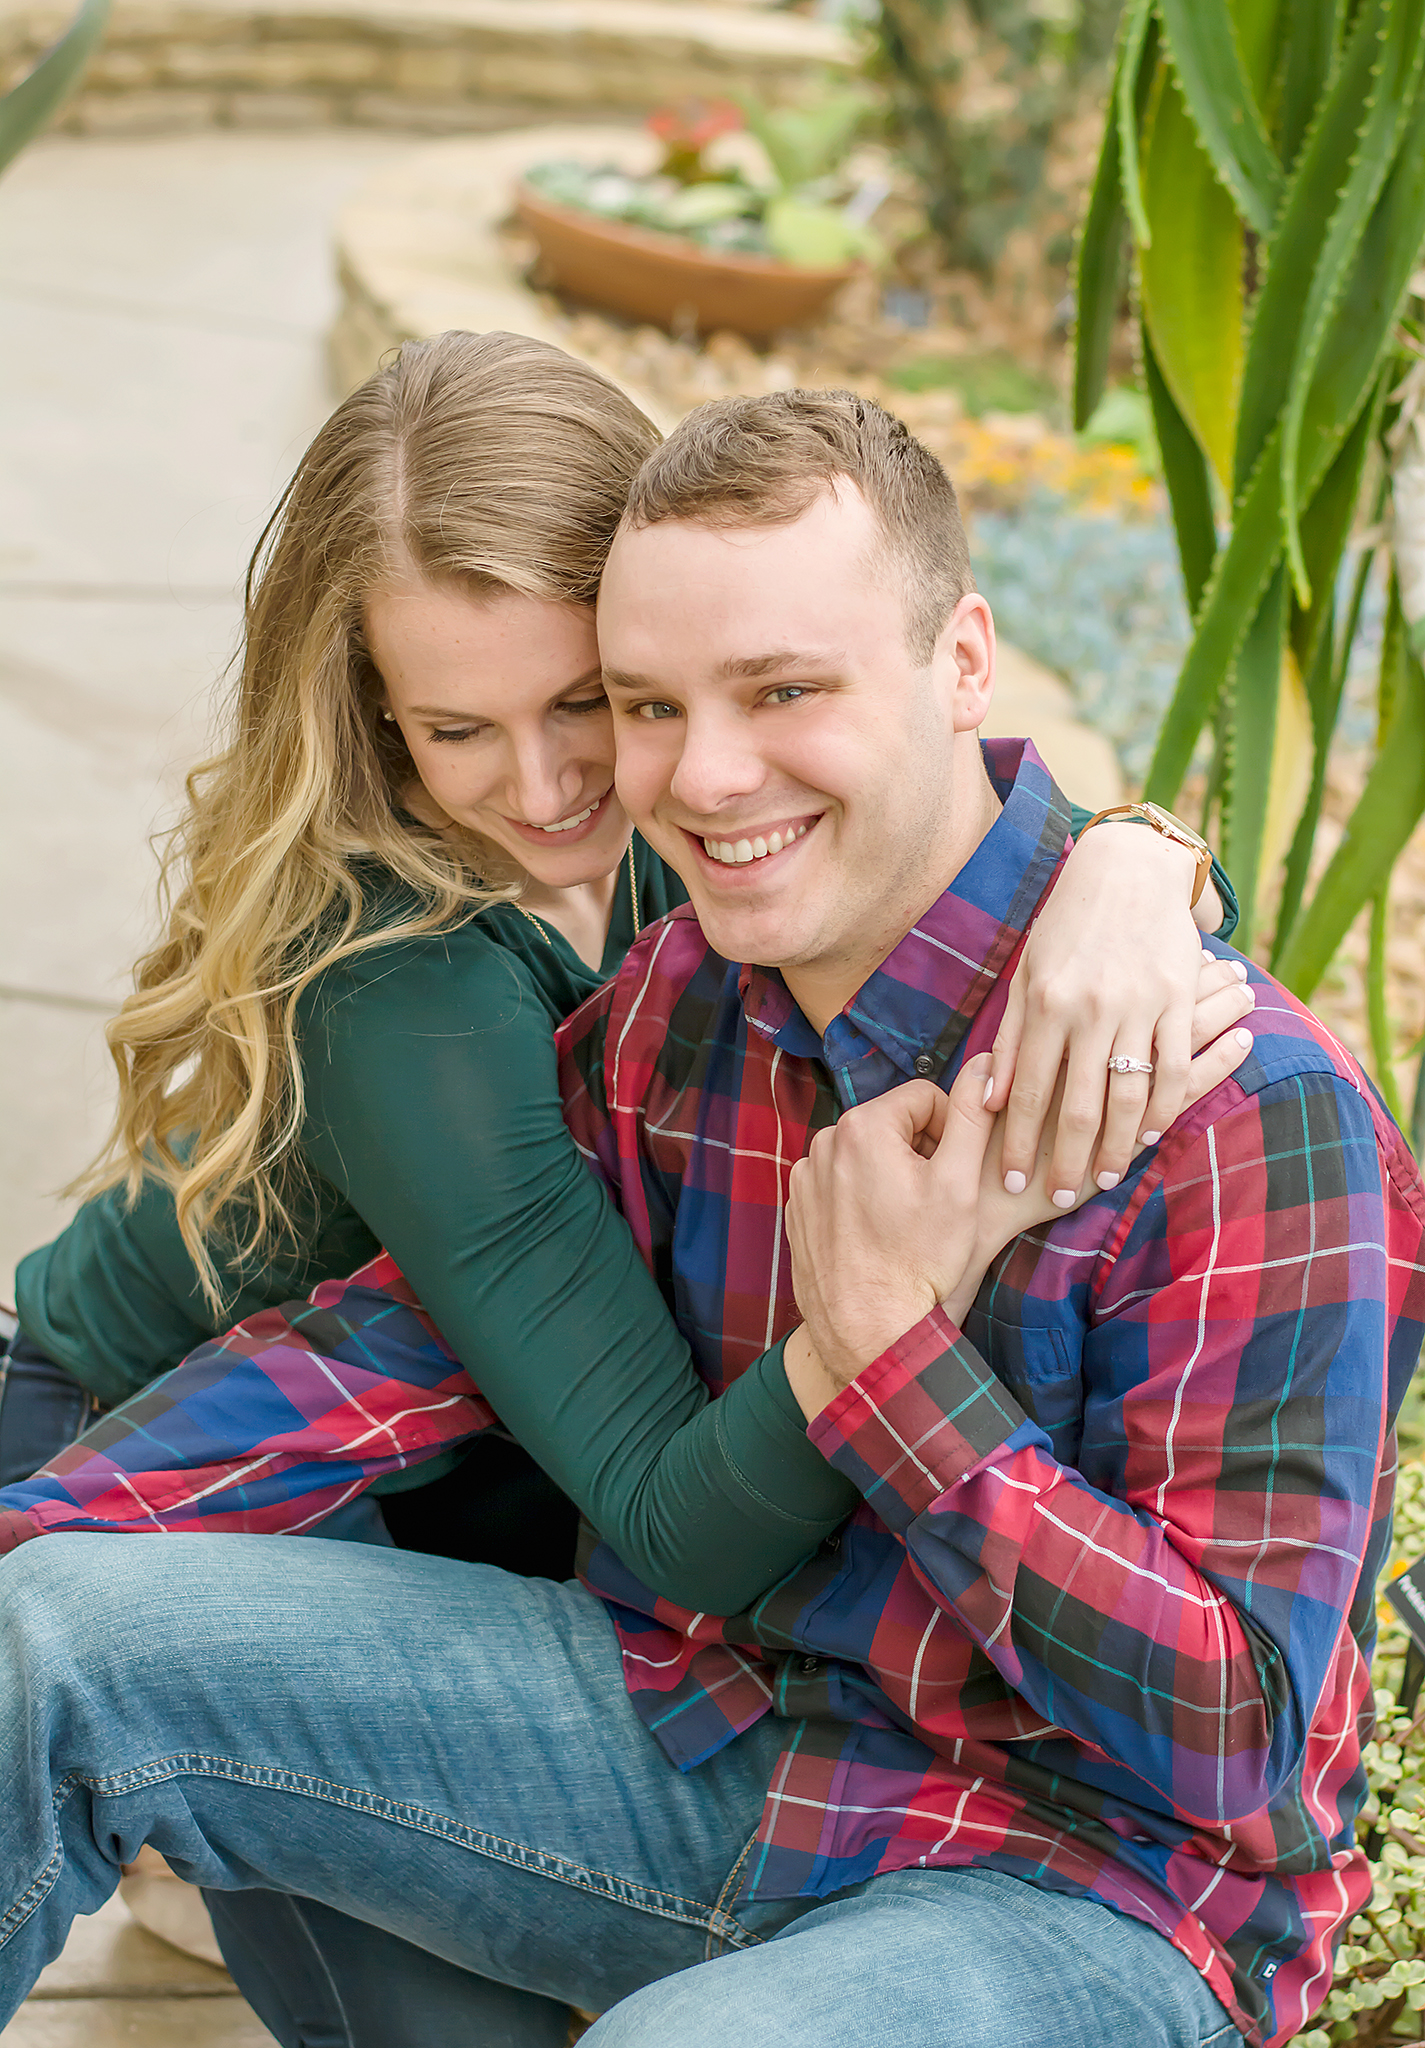 EMMY-SCOTT-ENGAGEMENT-HIDDENLAKEGARDENS-TIPTON-MICHIGAN-LINDSAY-ADKINS-PHOTOGRAPHY-MICHIGAN-WEDDING-PHOTOGRAPHER-6